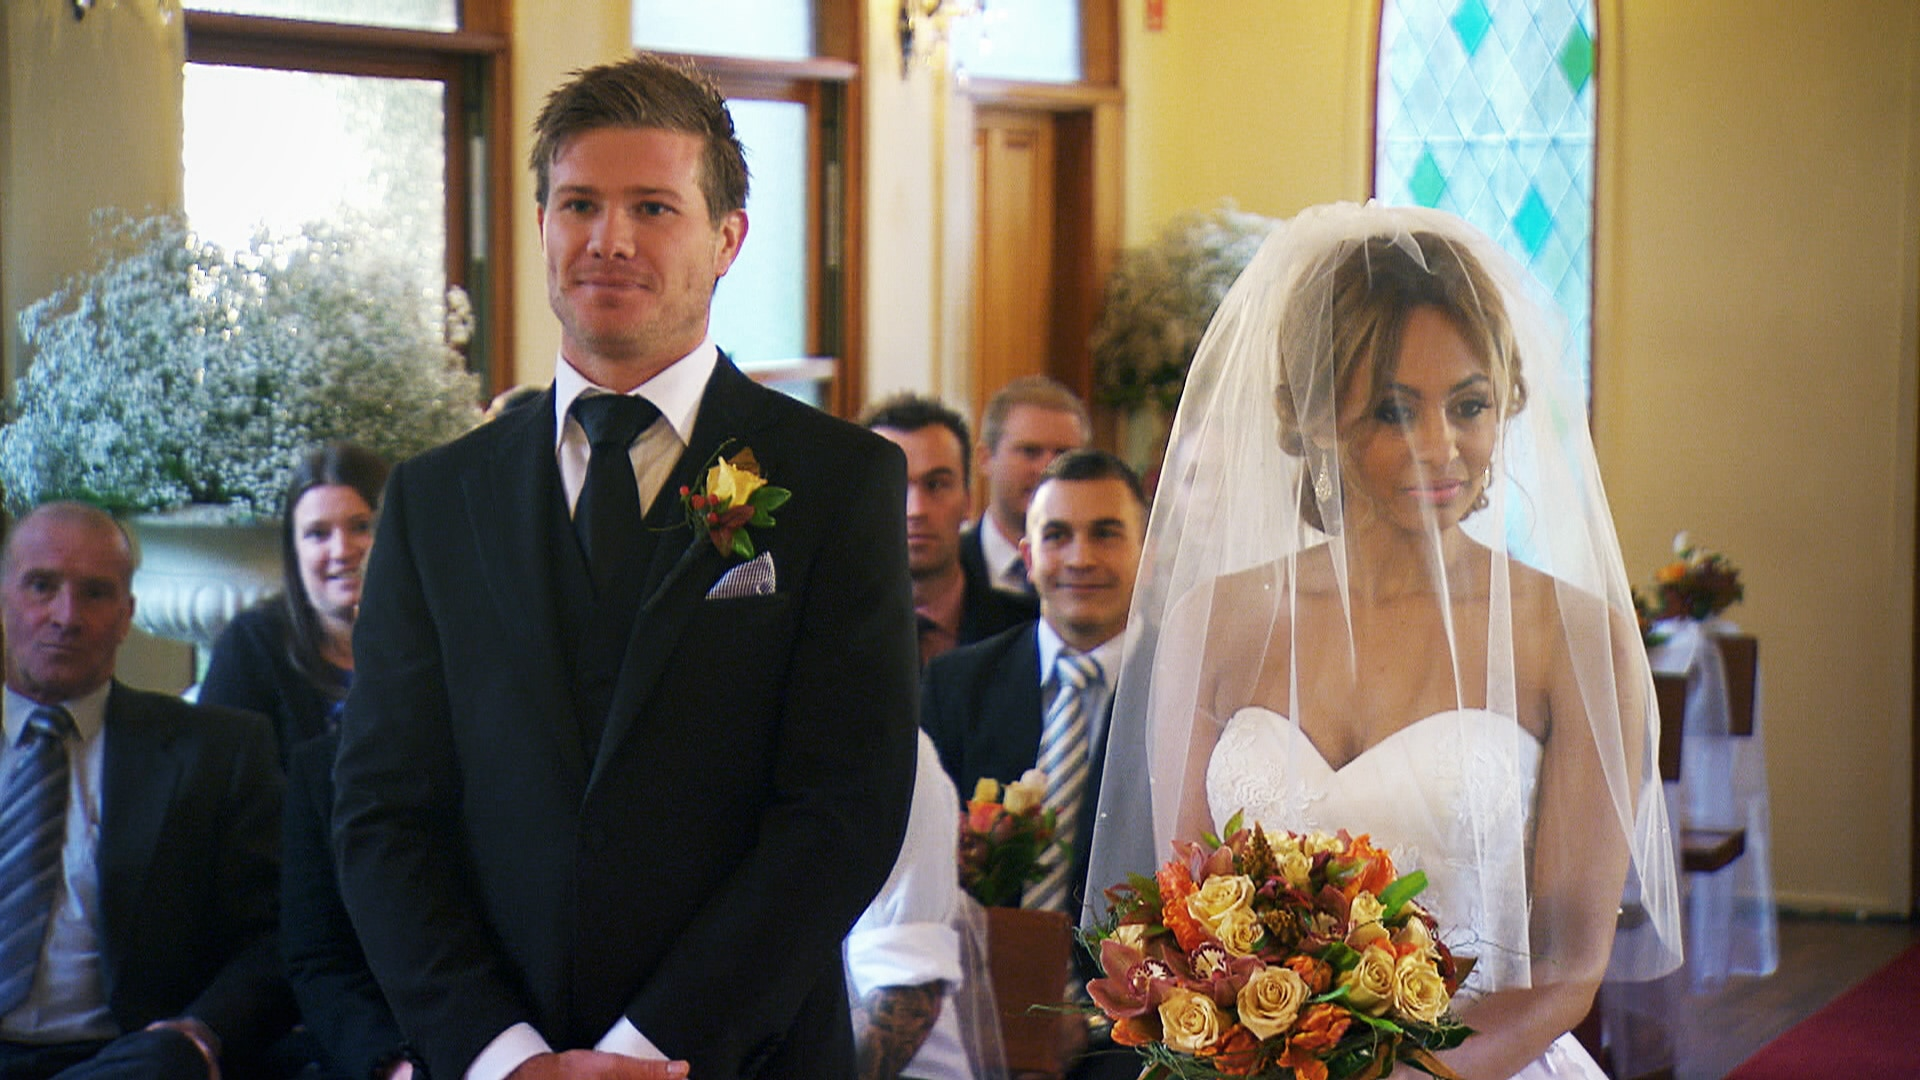 married at first sight s04e01 dailymotion